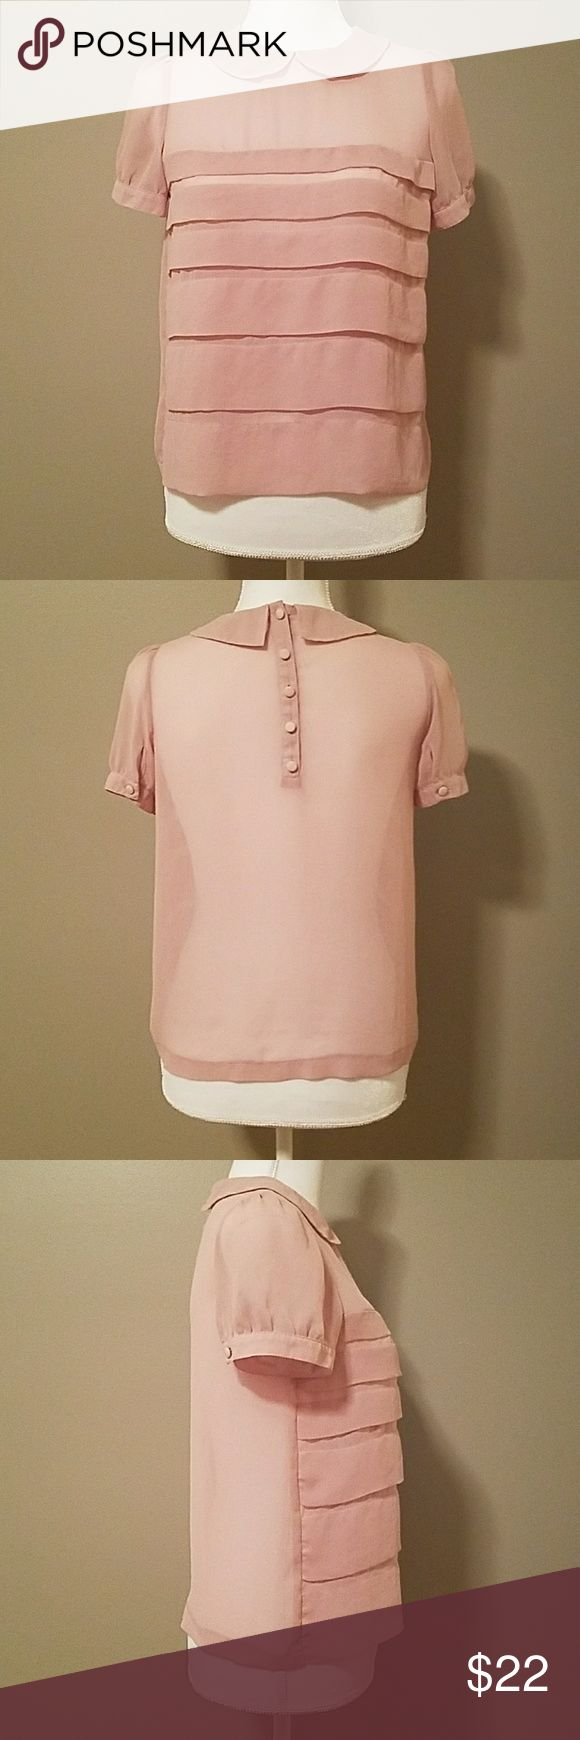 """Topshop Petite Blush Blouse Cute collared blouse with ruffled front Gently used excellent condition  Women's Petite Size 6 Length 22.5"""" Bust 36"""" Clean smoke free home Topshop PETITE Tops Blouses"""